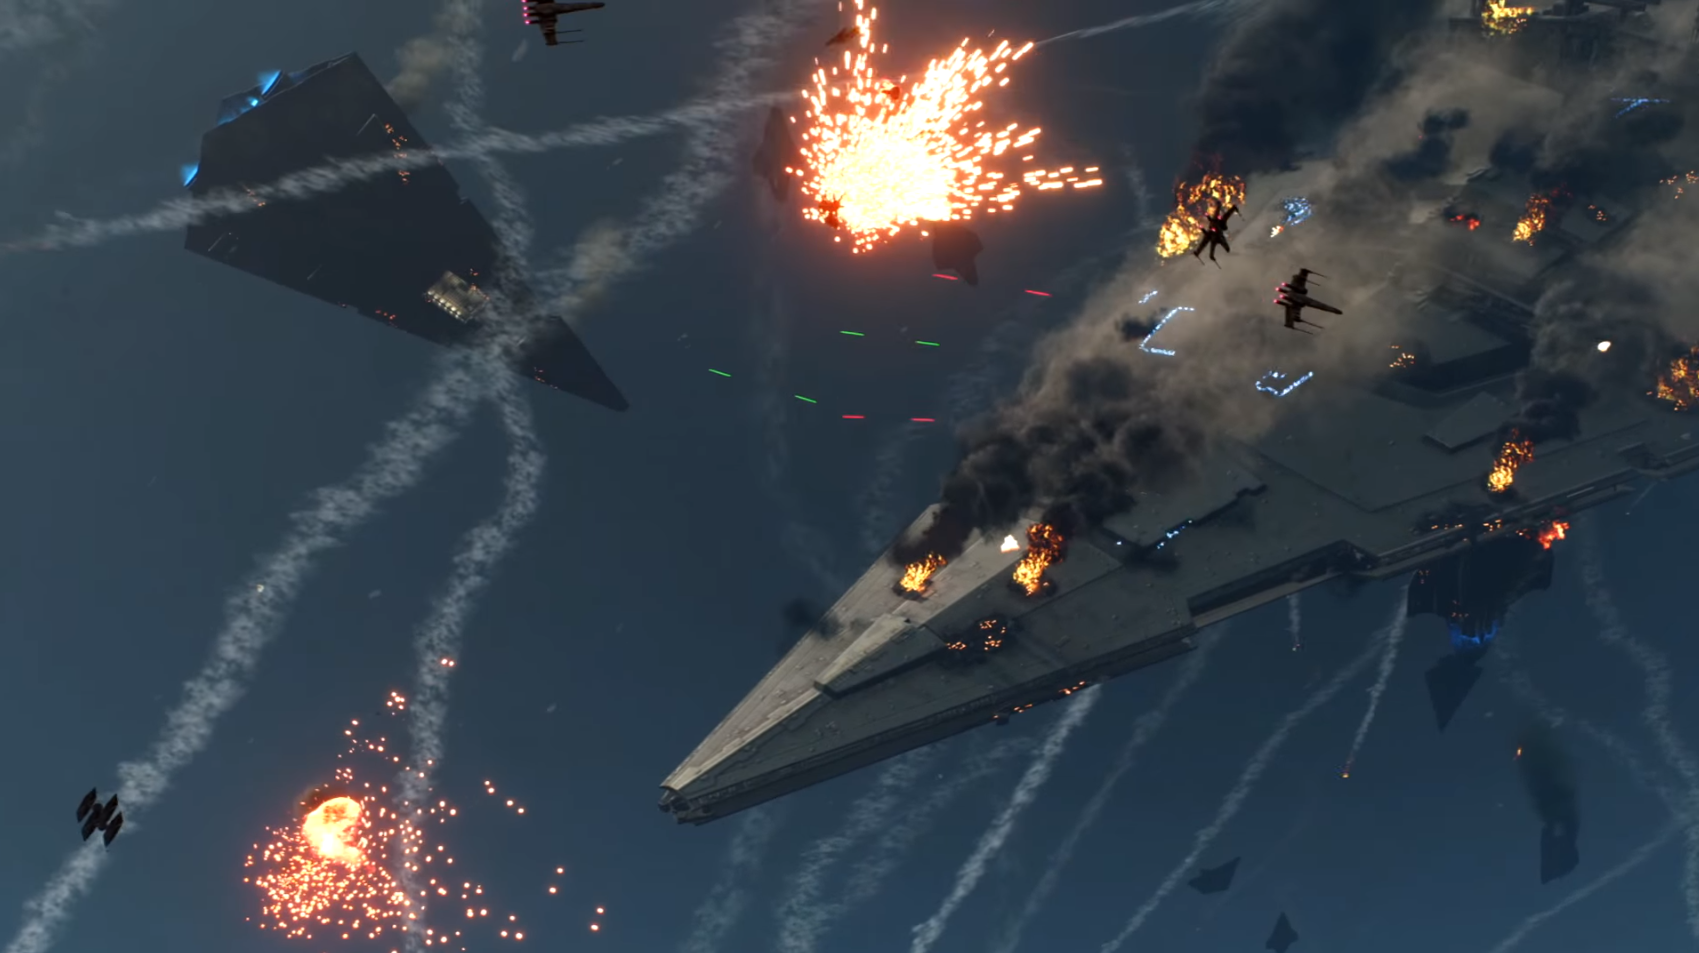 I don't think that Star Destroyer is spaceworthy anymore.